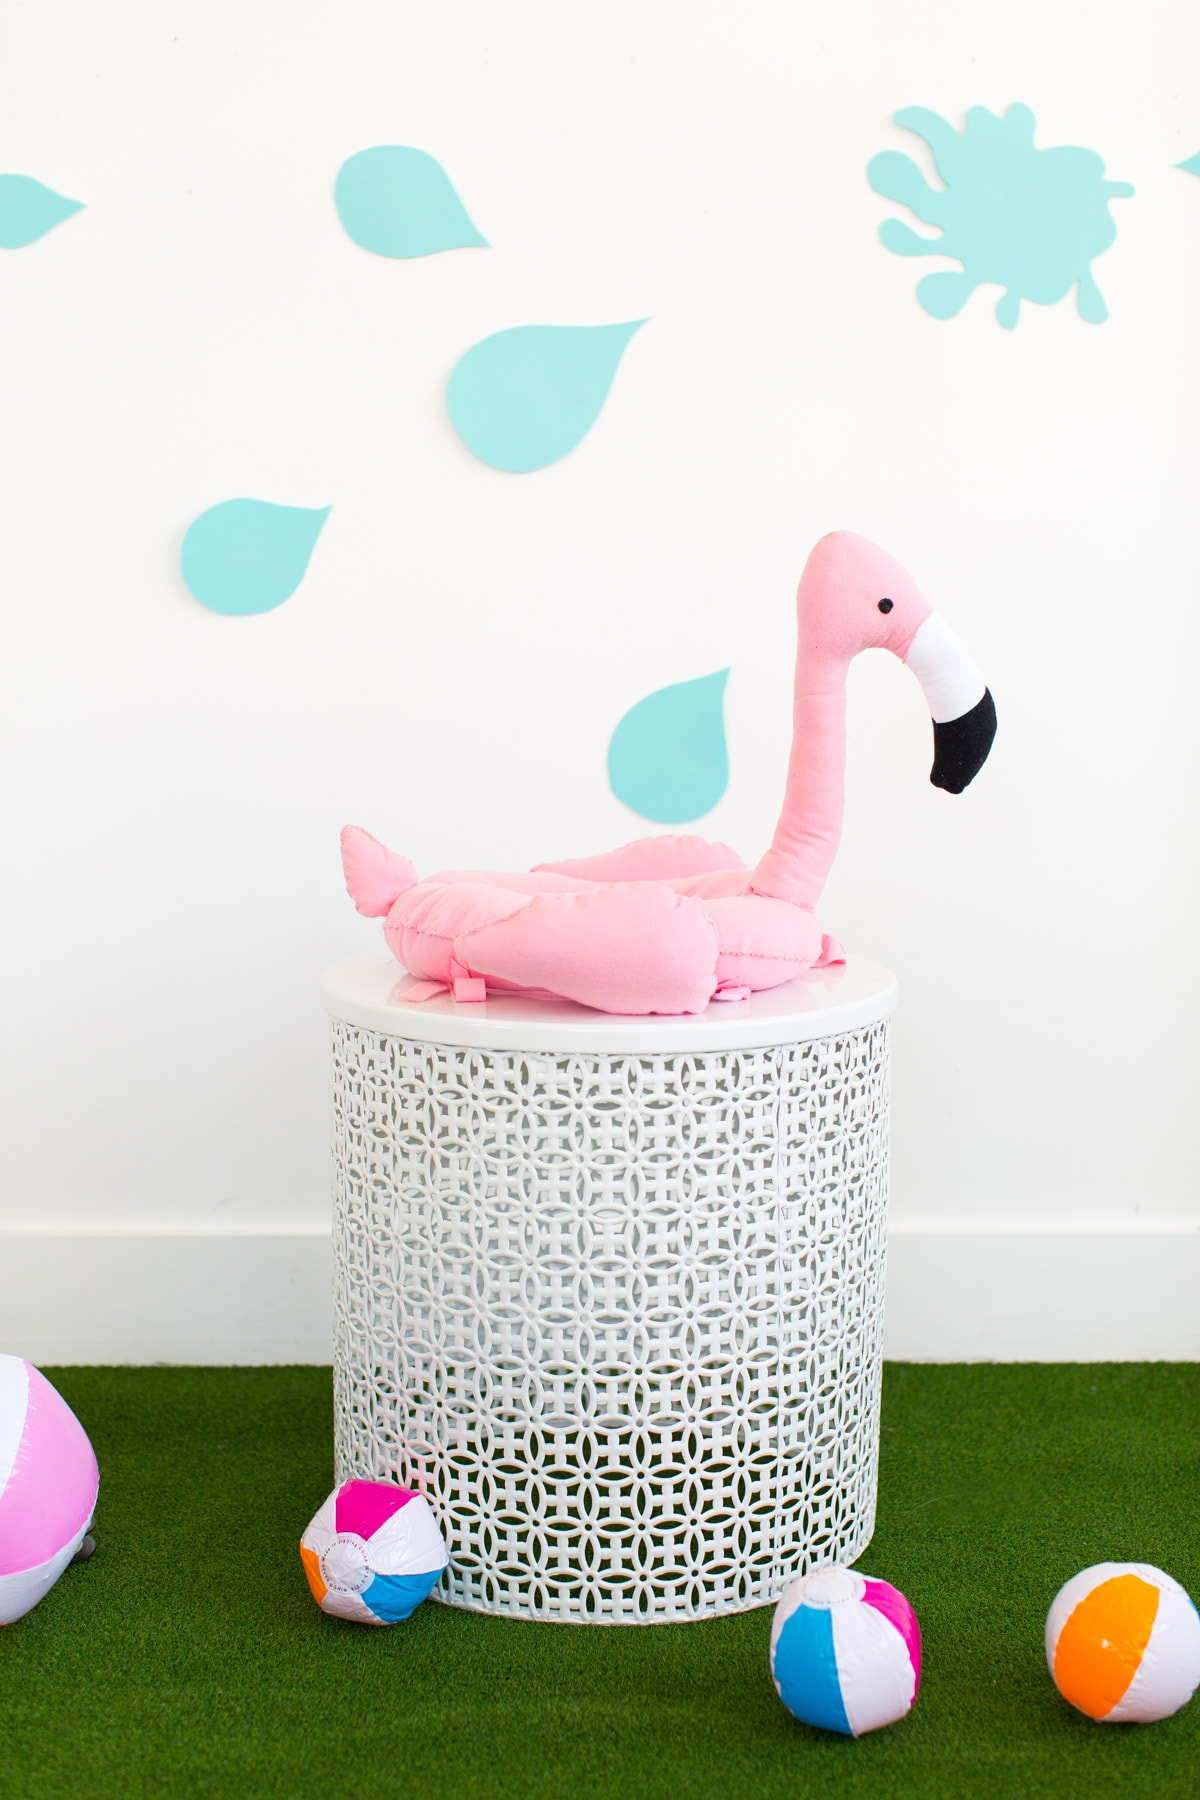 DIY Pool Float Costume For The Pups by Ashley Rose of Sugar & Cloth, a lifestyle blog in Houston